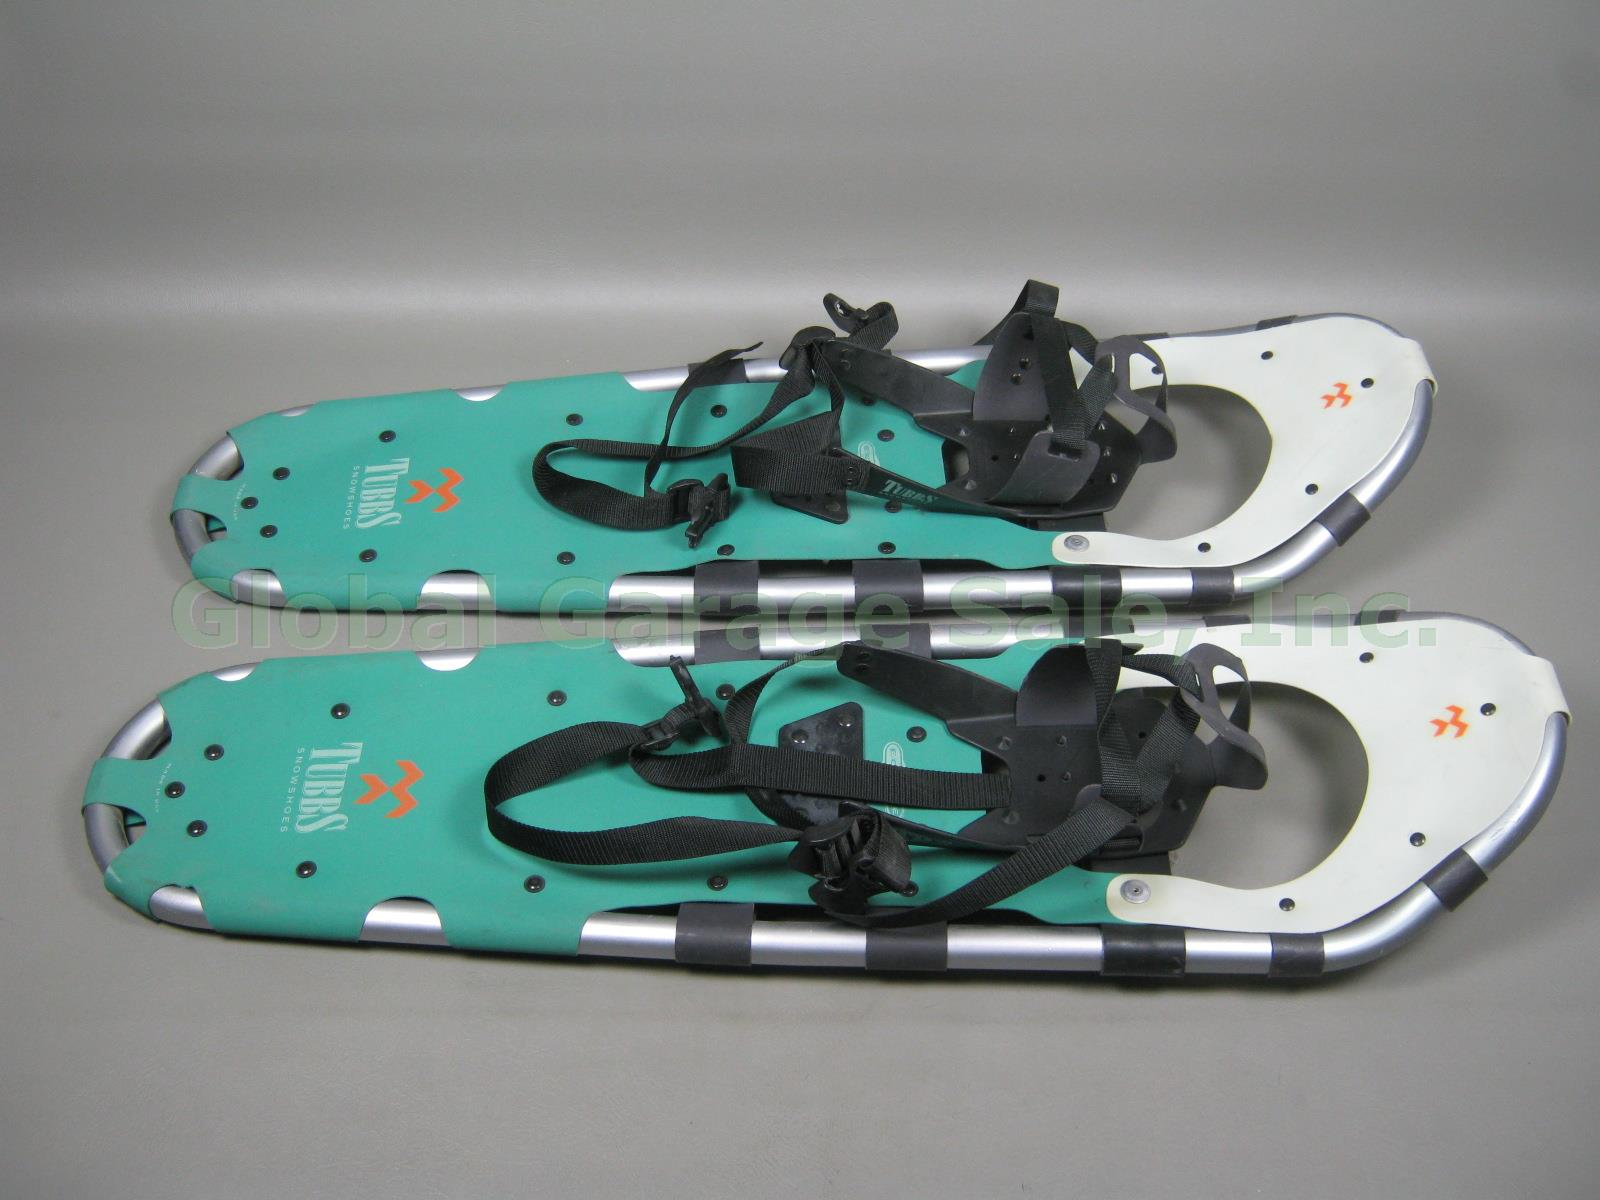 Cross Country Skis For Sale >> Sporting Goods - Sold by Global Garage Sale